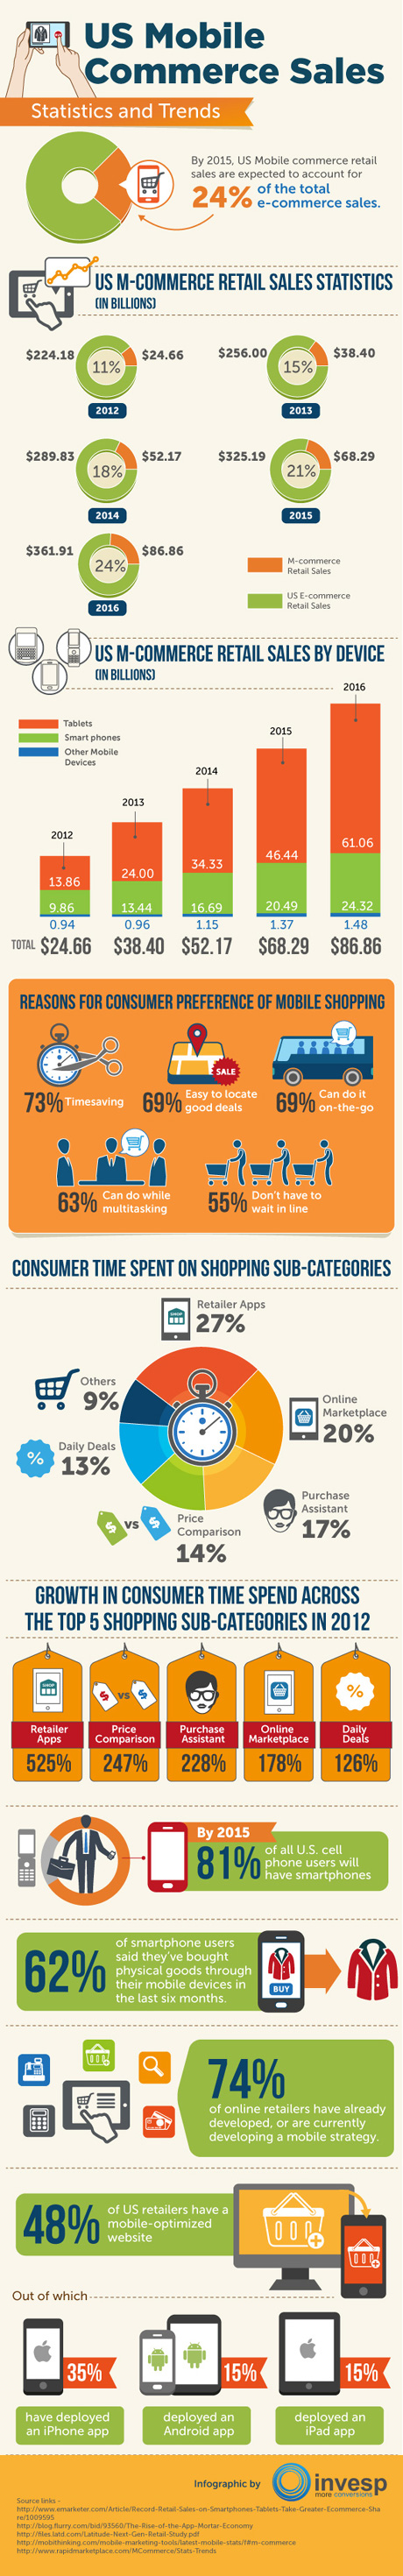 infografik-mobile-commerce